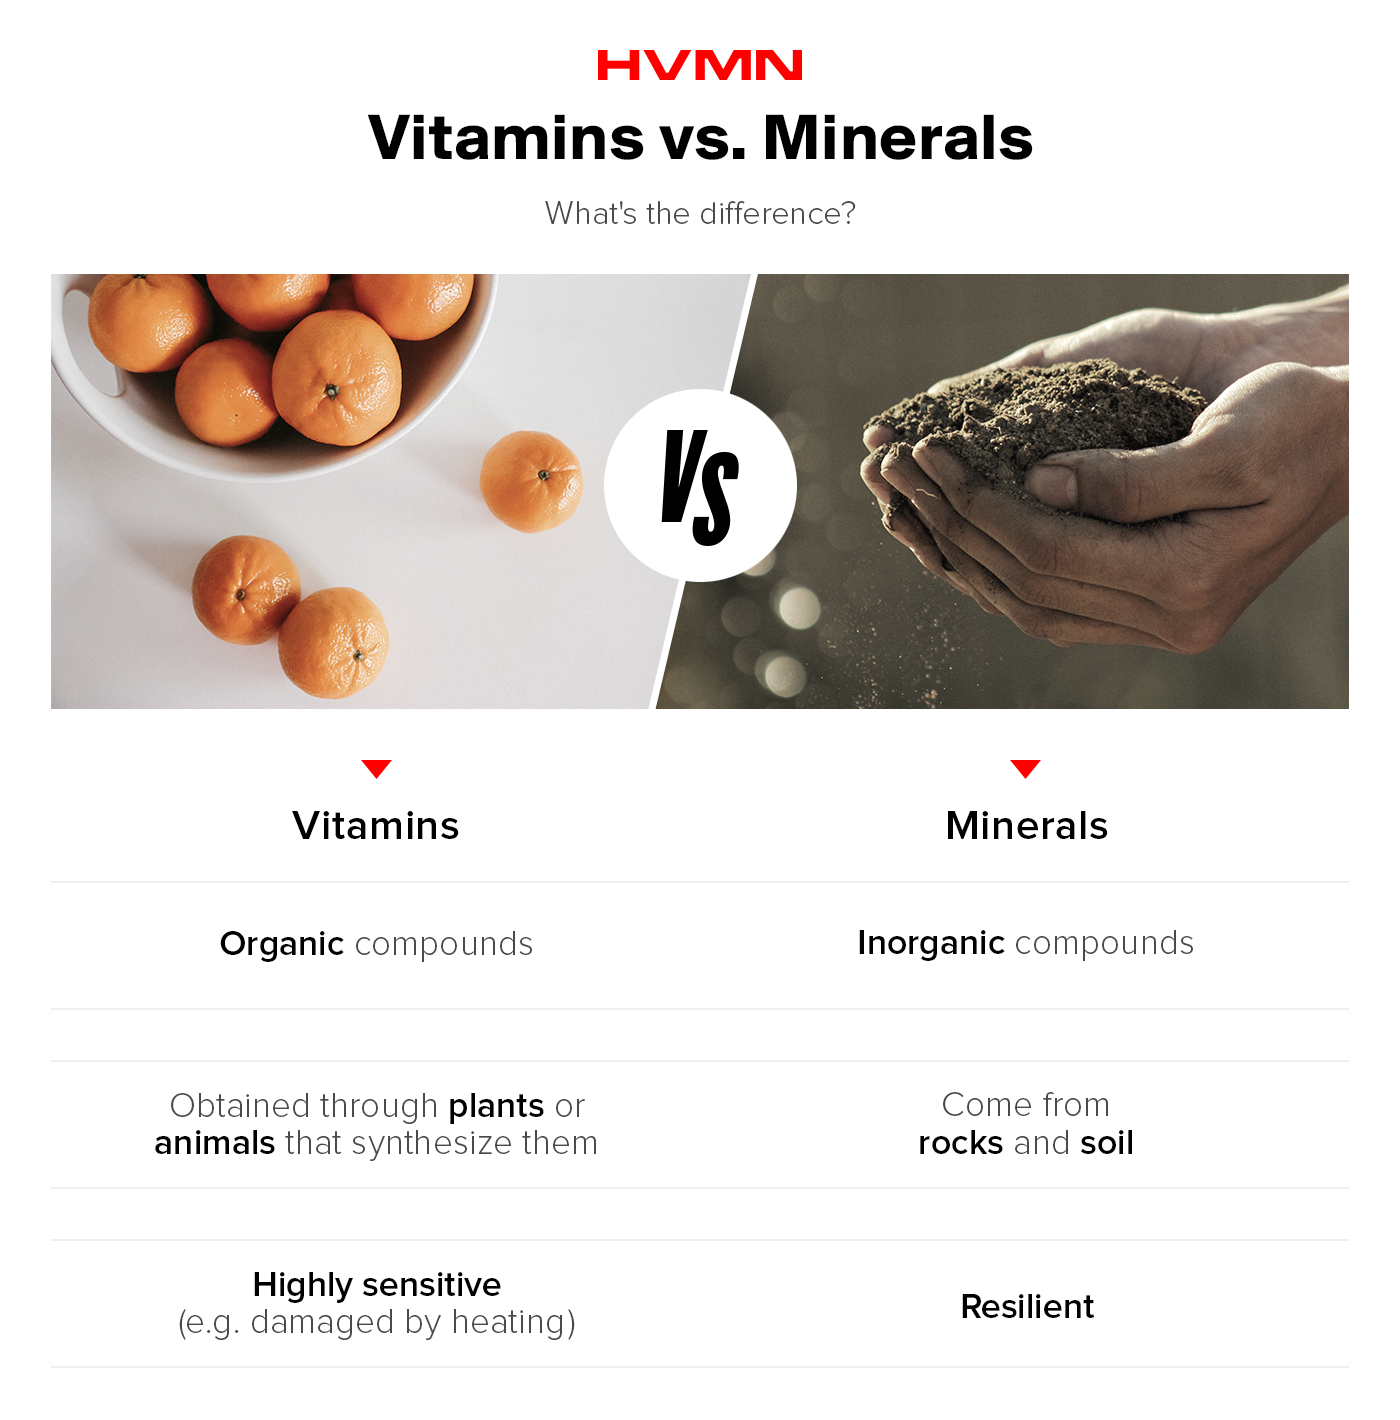 an image of oranges next to an image of soil in hands, showing the difference between vitamins and minerals